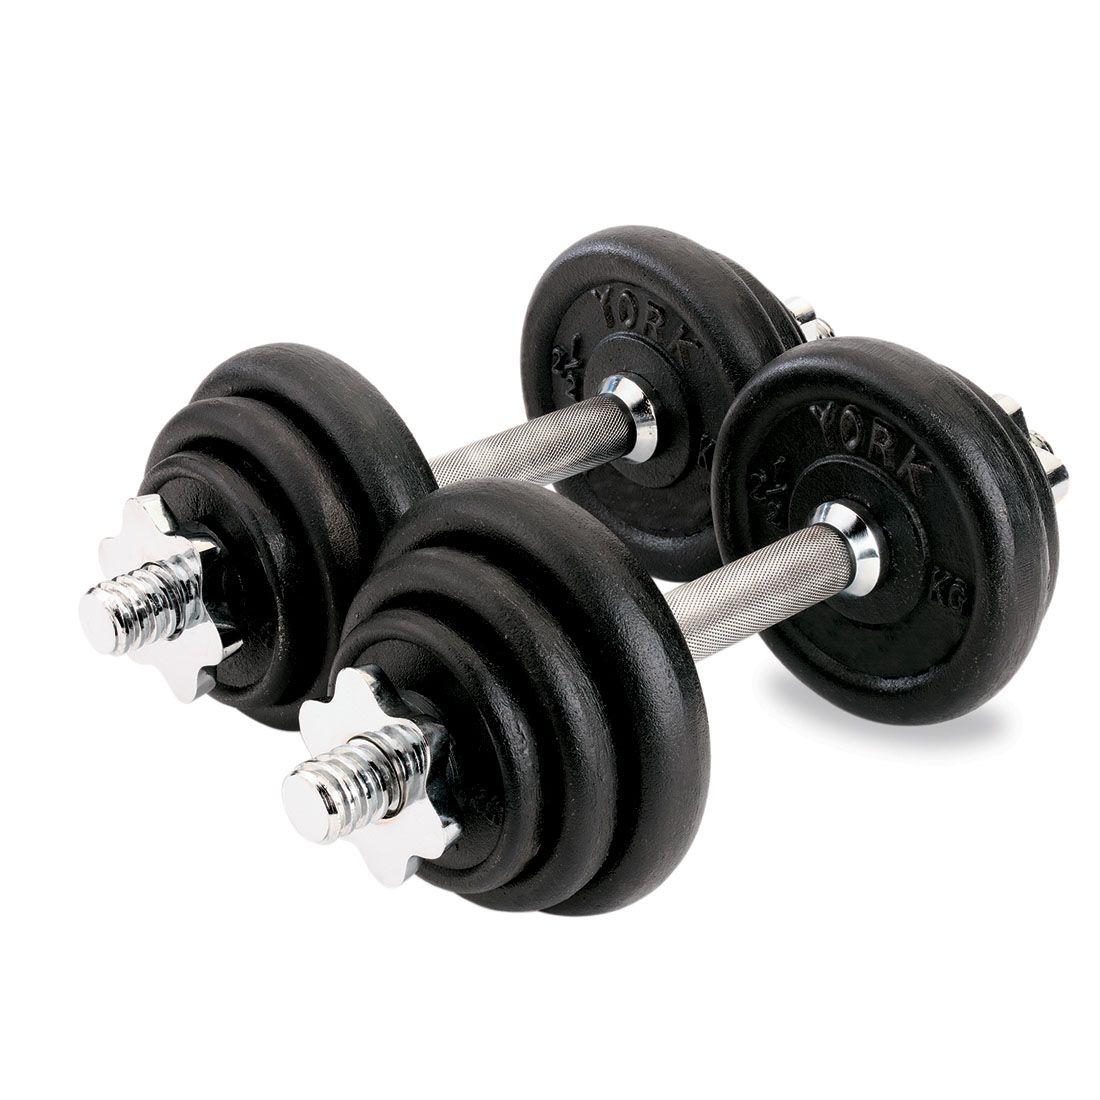 York Dumbbell Set Philippines: Images Of .kg Page 3